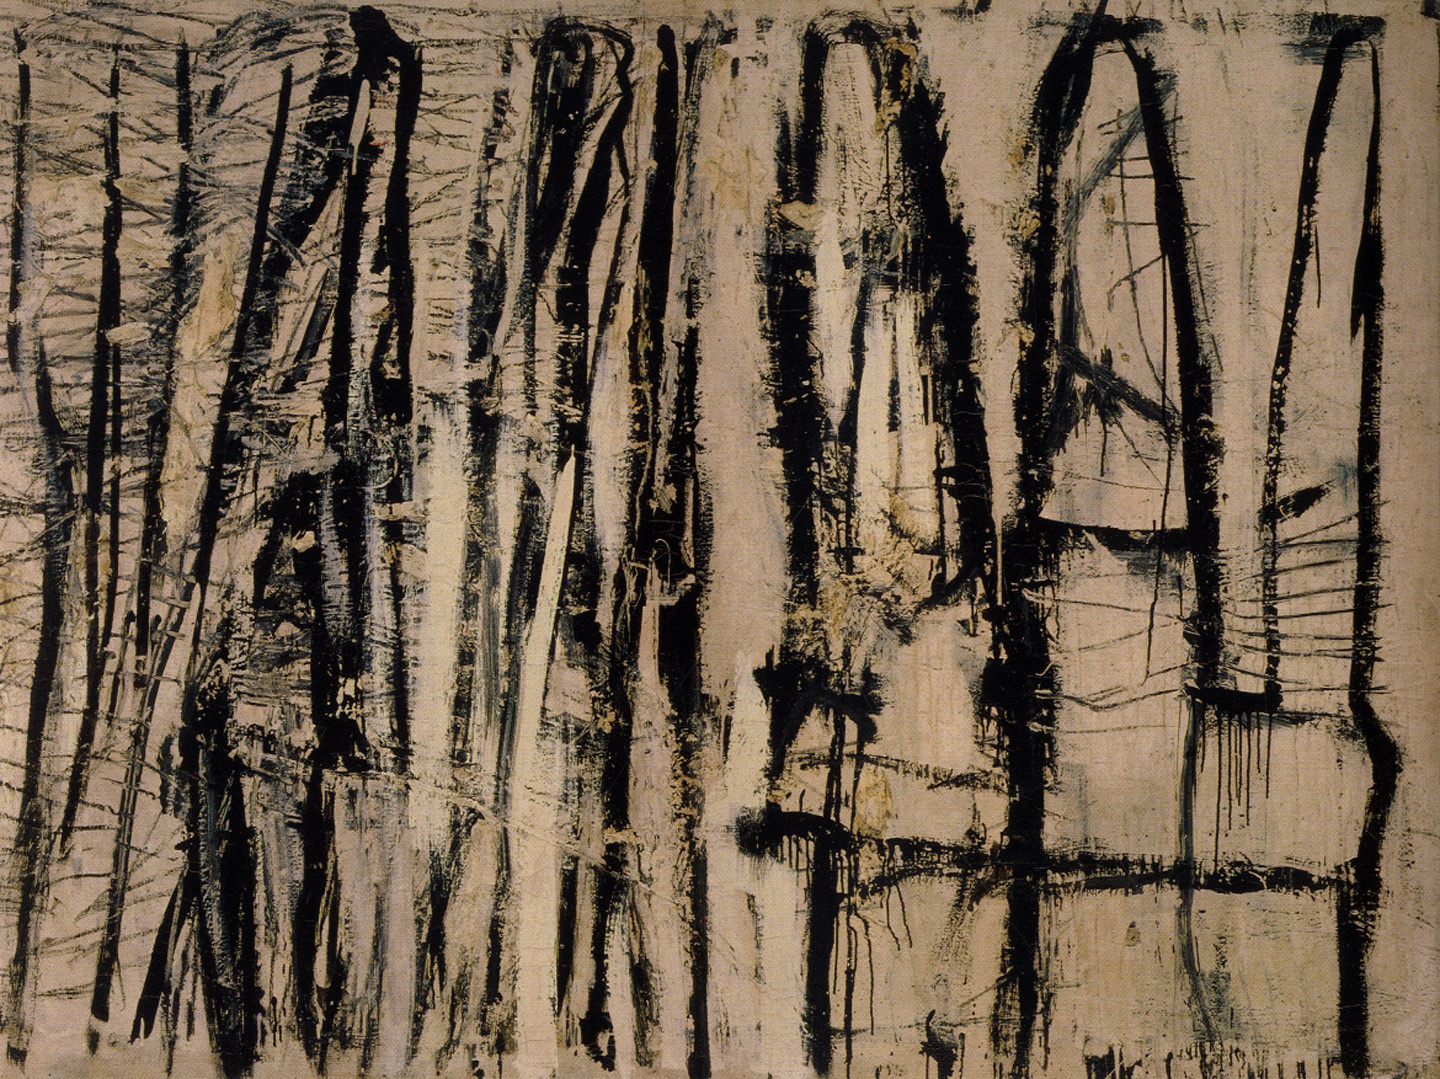 Cy Twombly: Cycles and Seasons